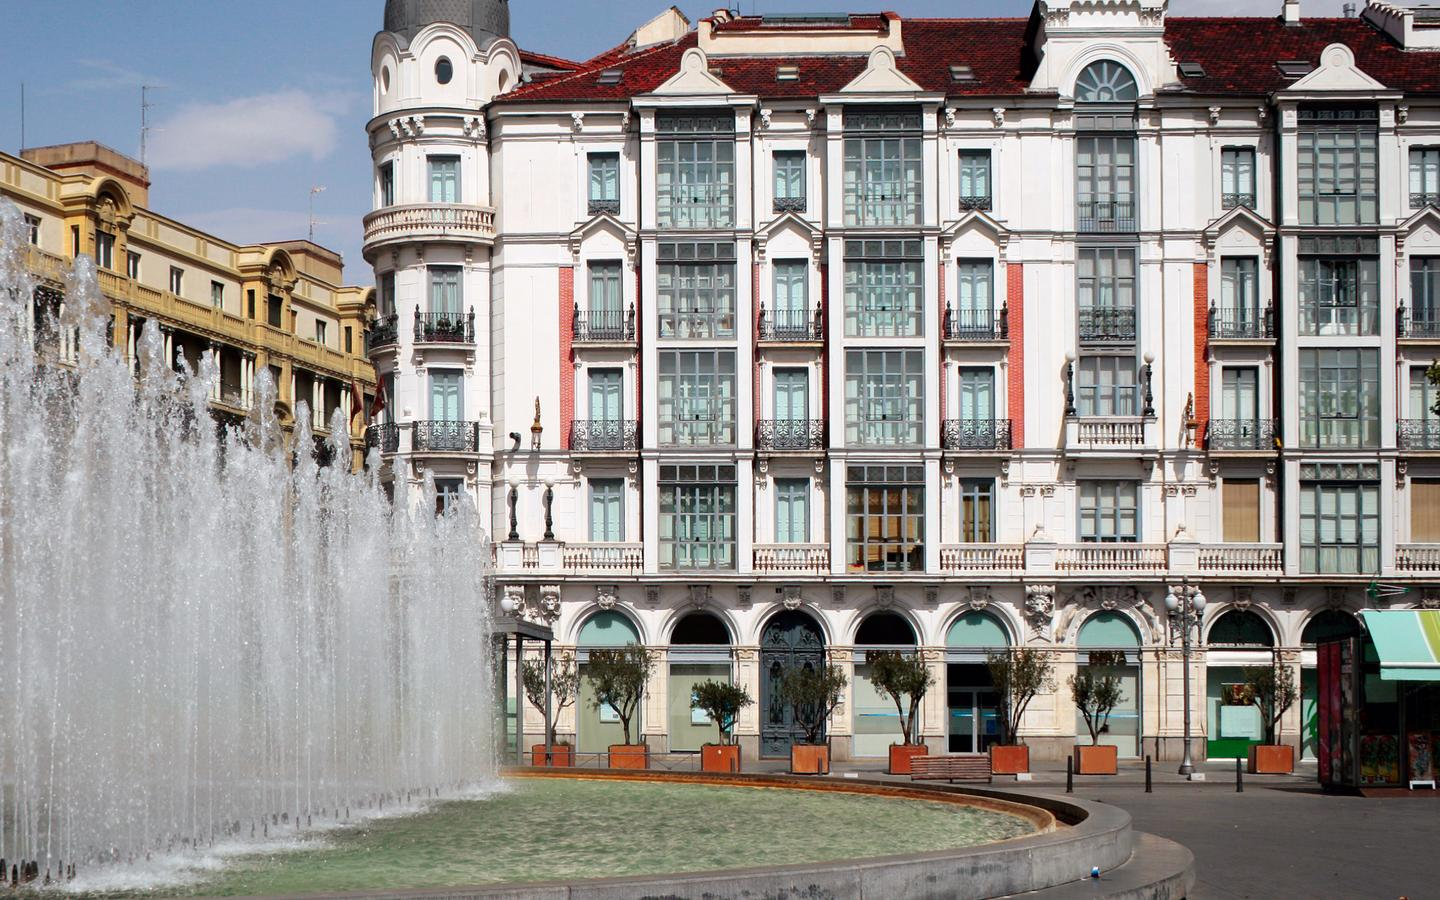 Hotels in Valladolid